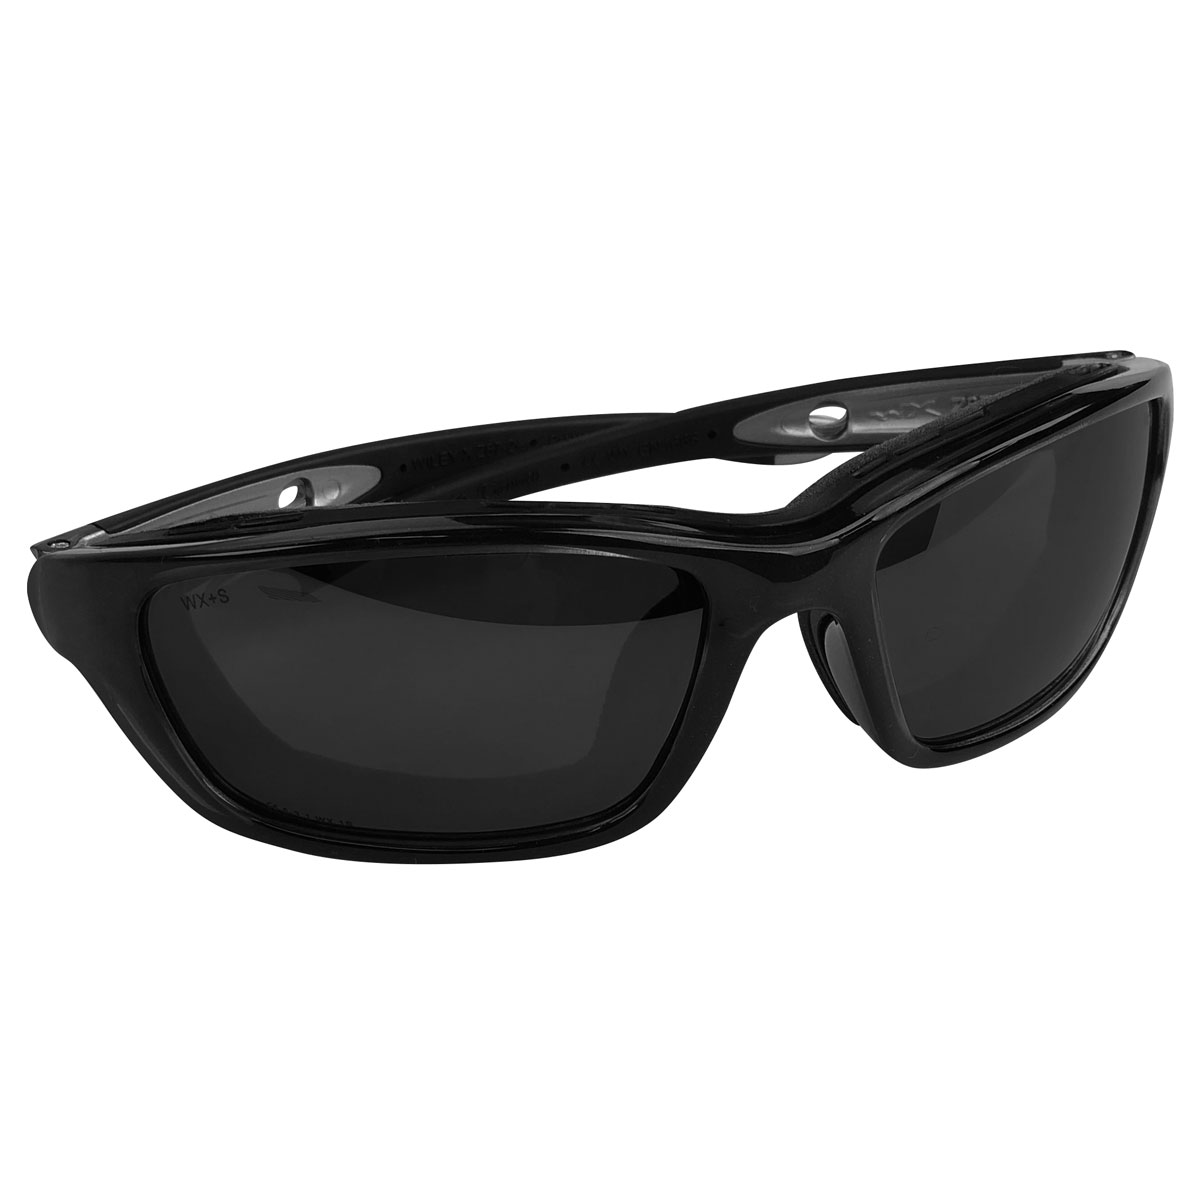 Wiley X Brick Goggles/Sunglasses with Silver Flash Lenses